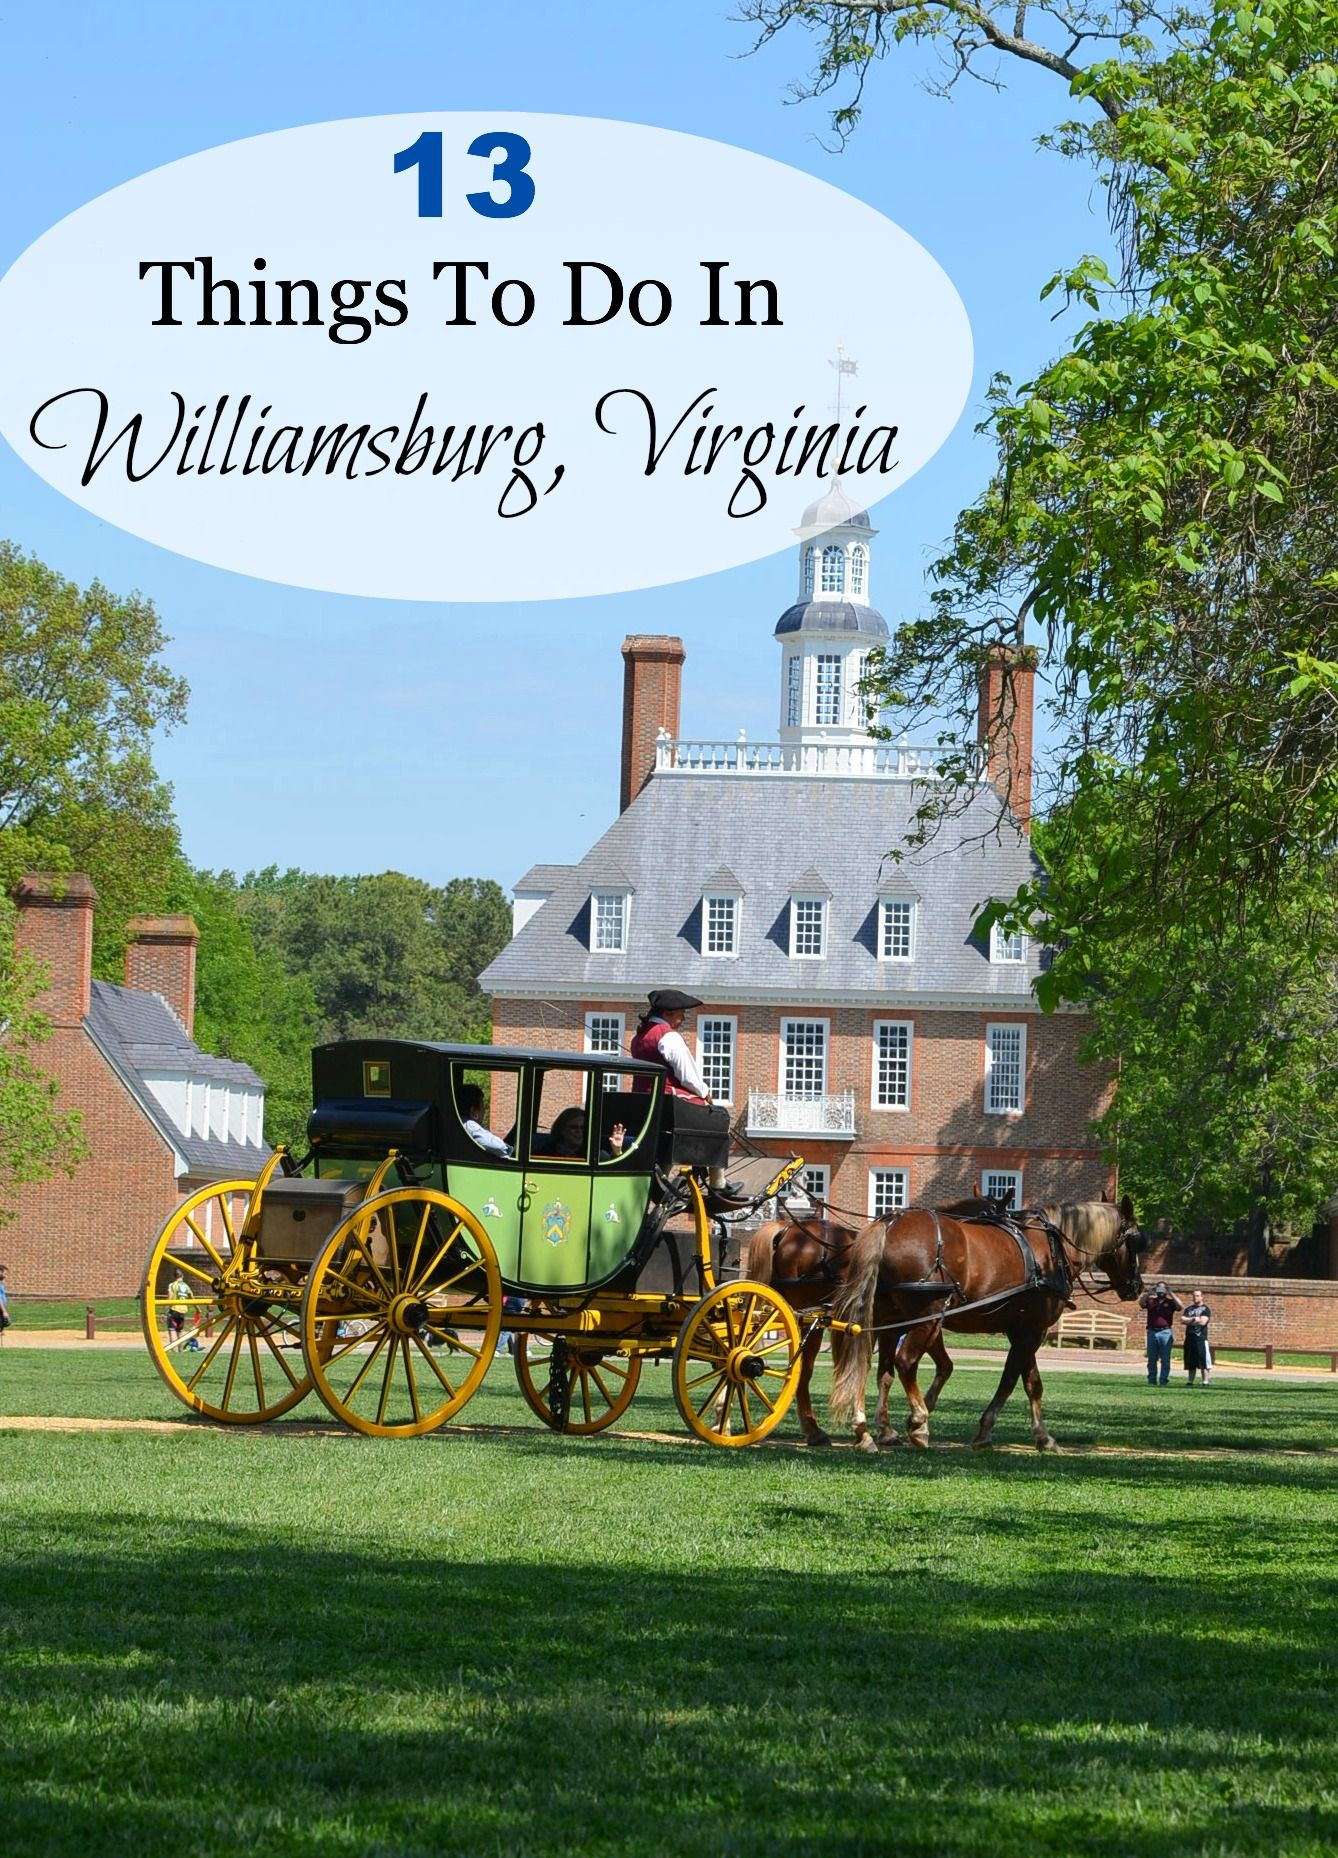 Things To Do In Williamsburg Virginia